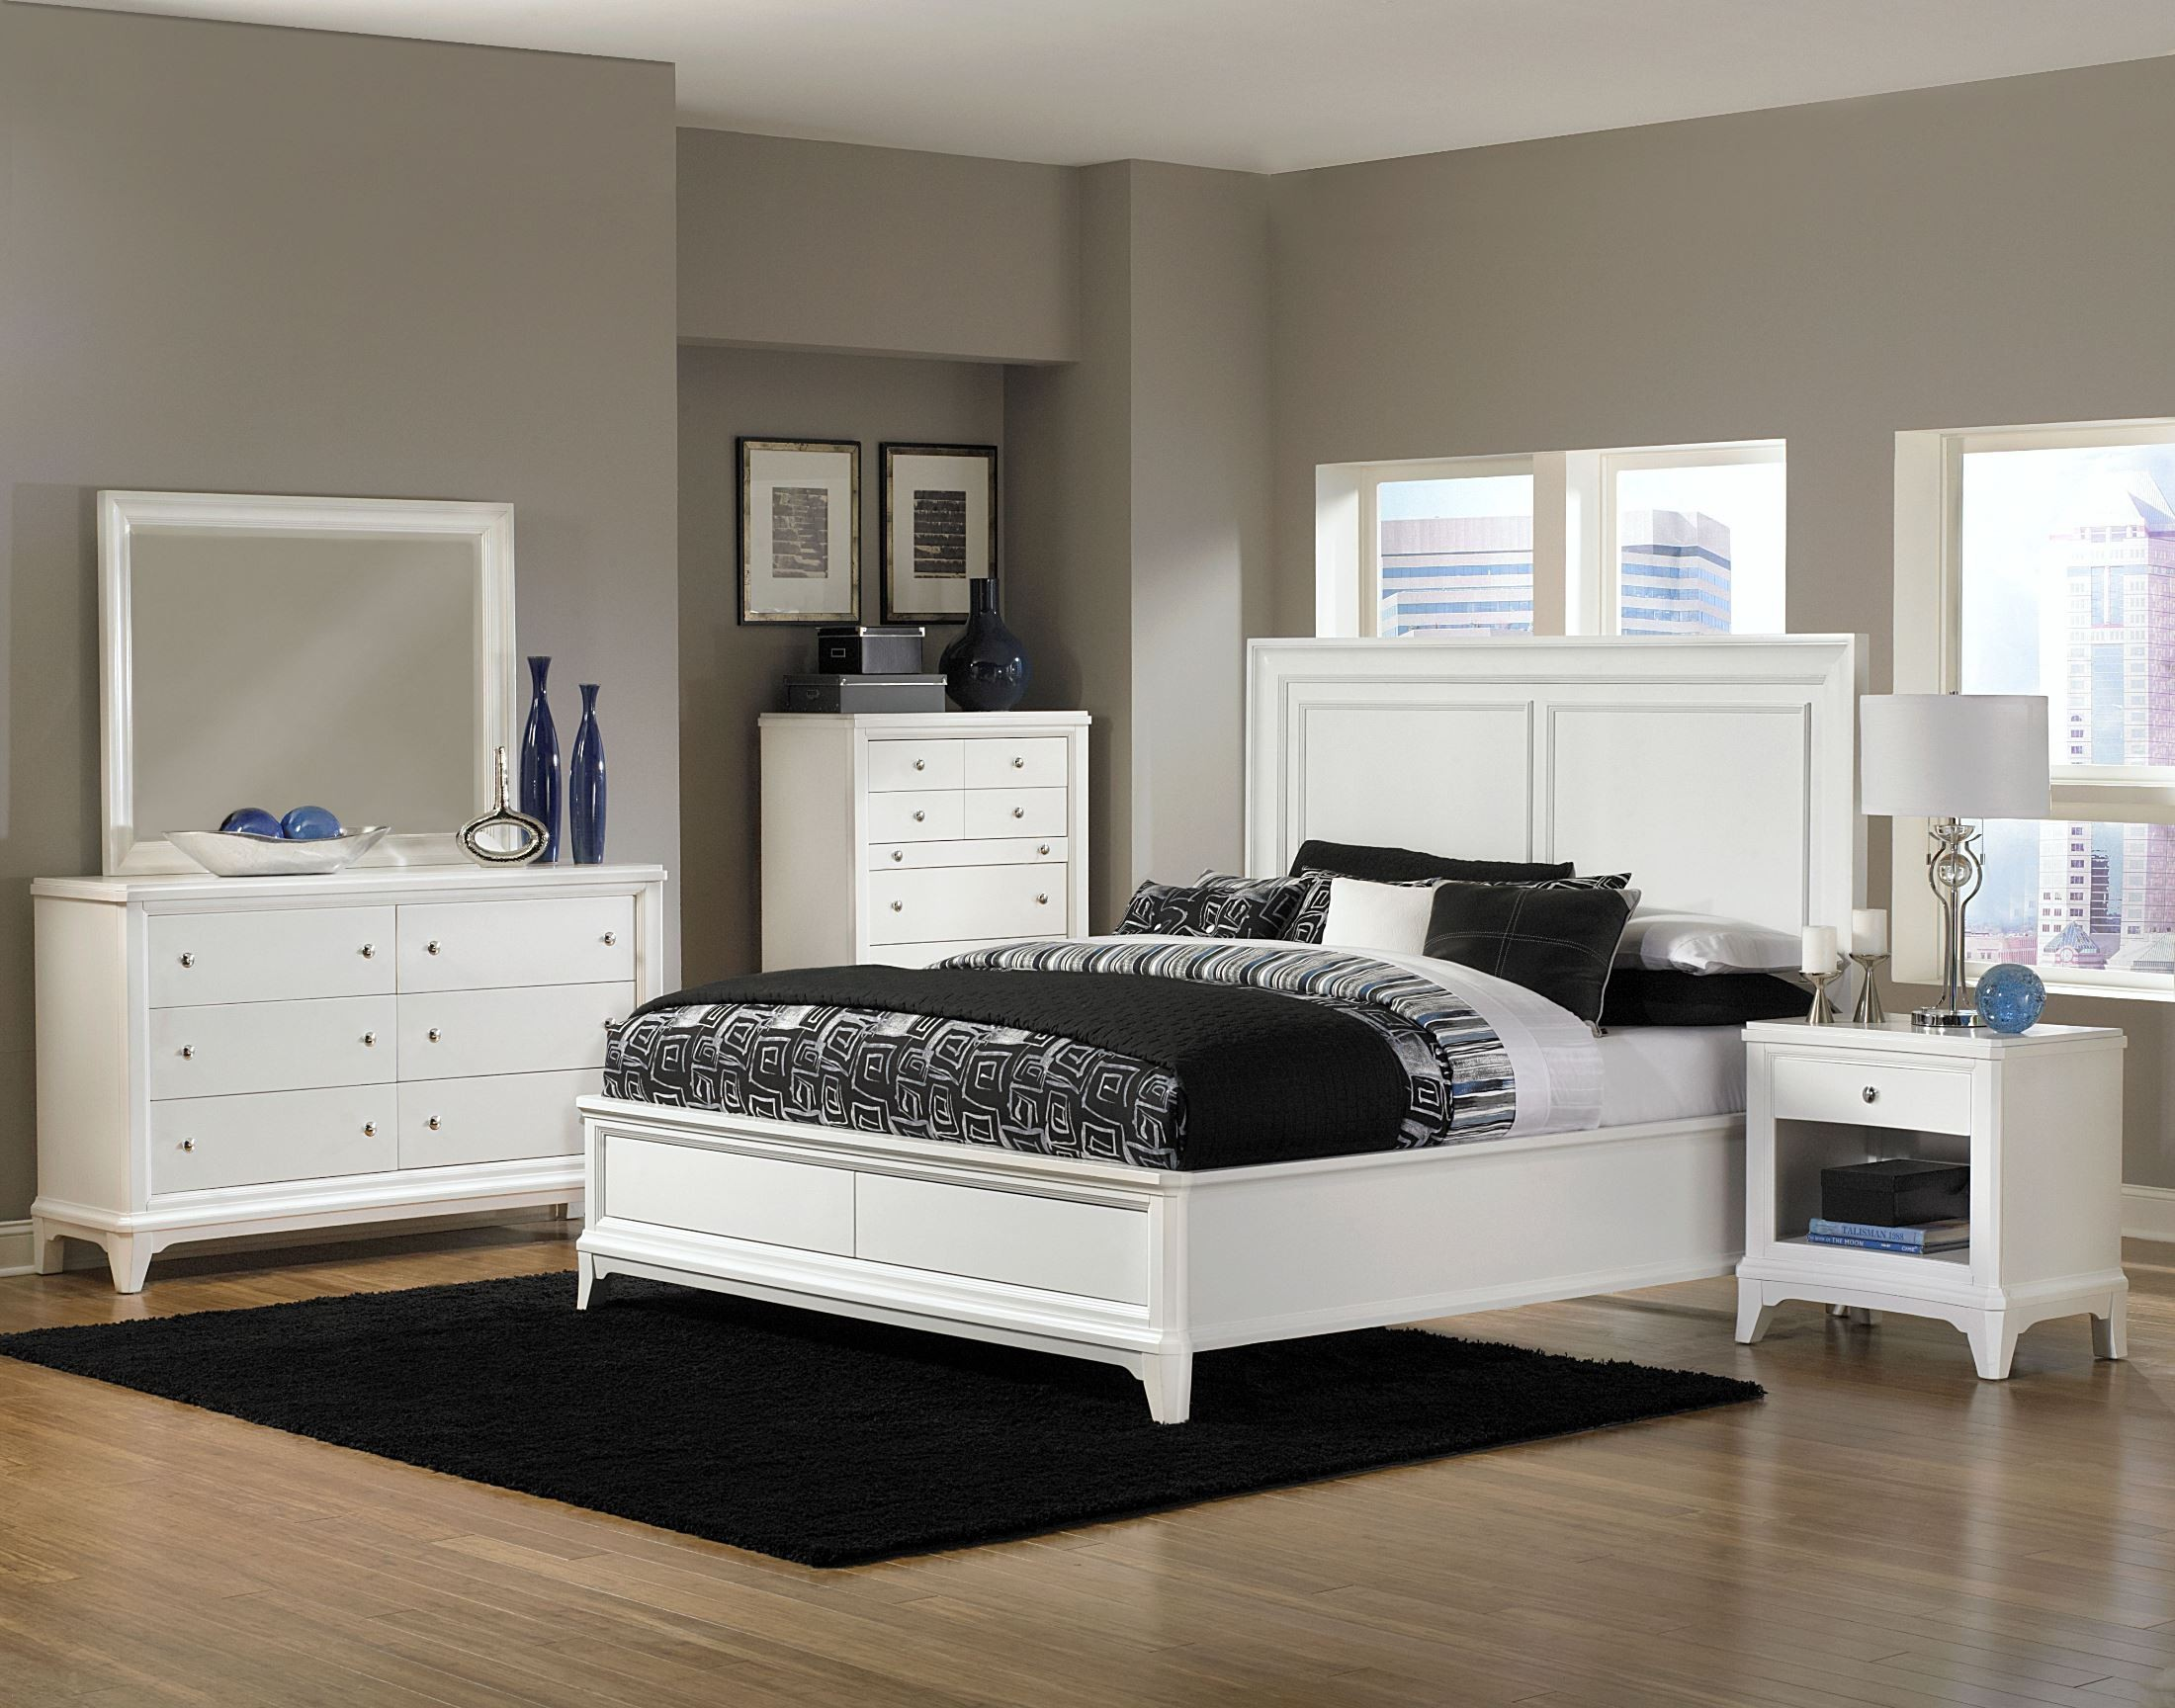 whitley island bedroom set from magnussen home b2372 51h 50f 50r